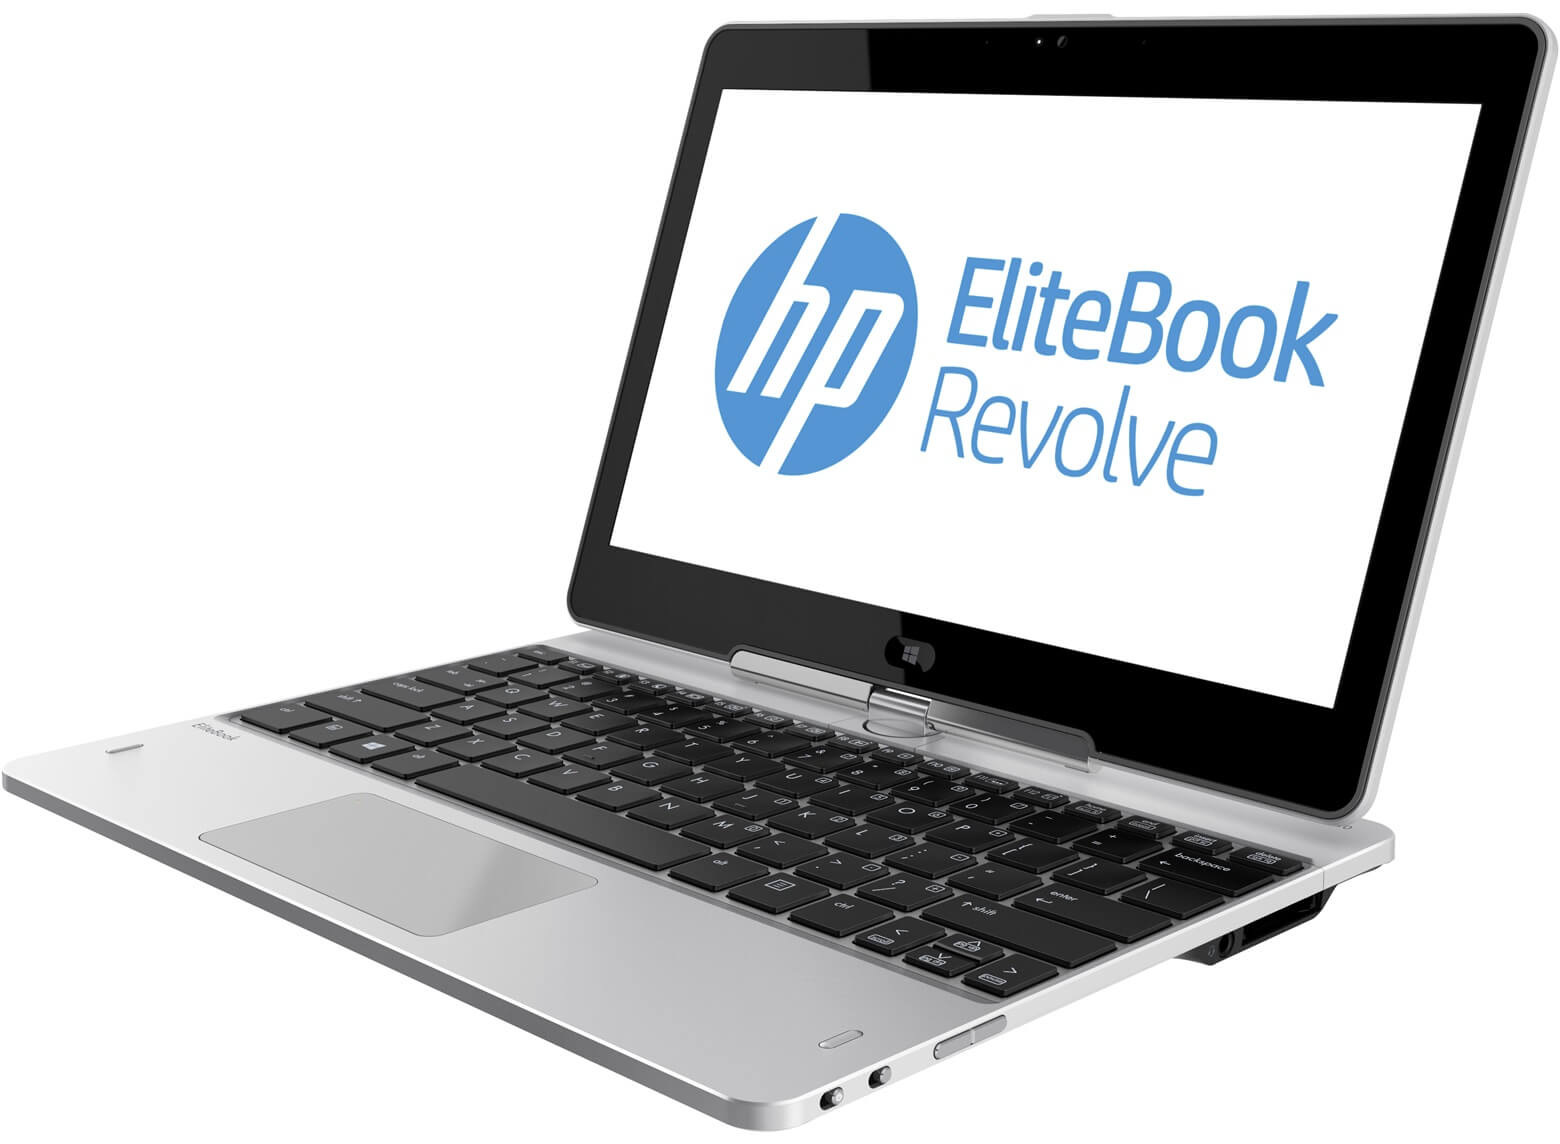 HP ELITEBOOK REVOLVE 810 G2 TABLET I5-4300U 1.9 / 8192MB DDR3L / 256GB SSD M.2 / WIN 10 PRO / 11.6